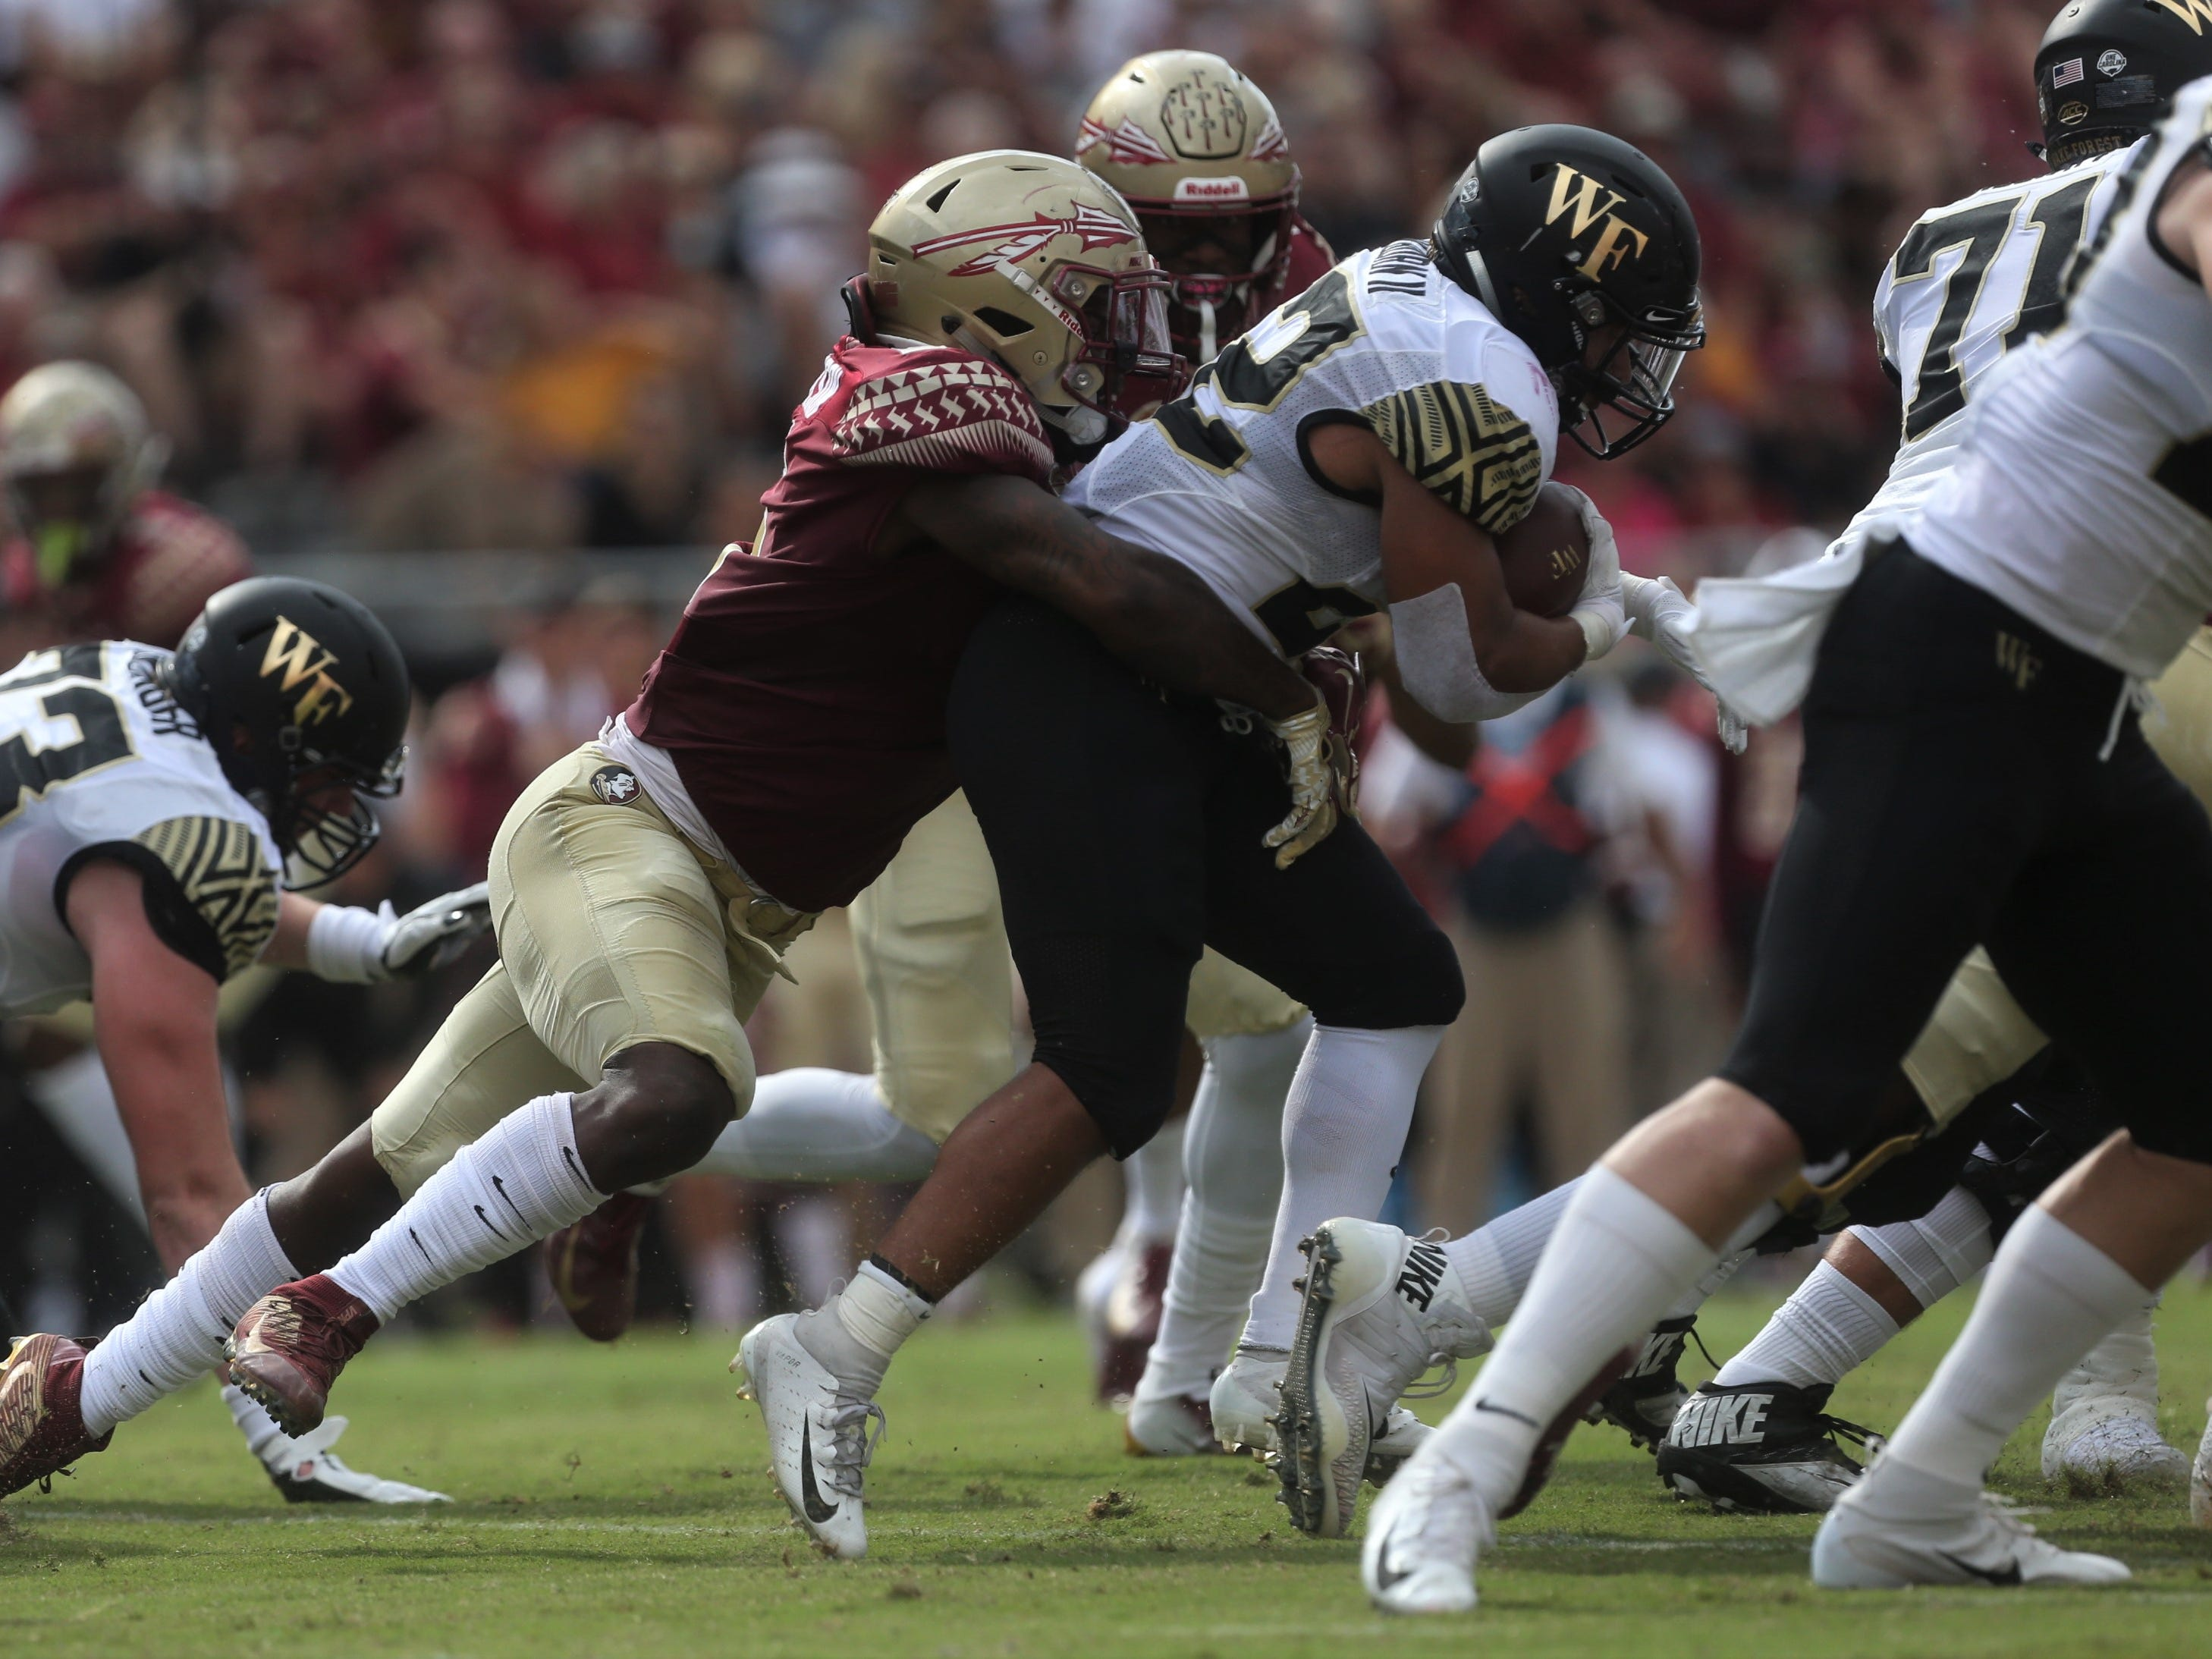 Wake Forest running back Matt Colburn II is taken down by a Florida State linebacker during a game at Doak Campbell Stadium on Saturday, Oct. 20, 2018.